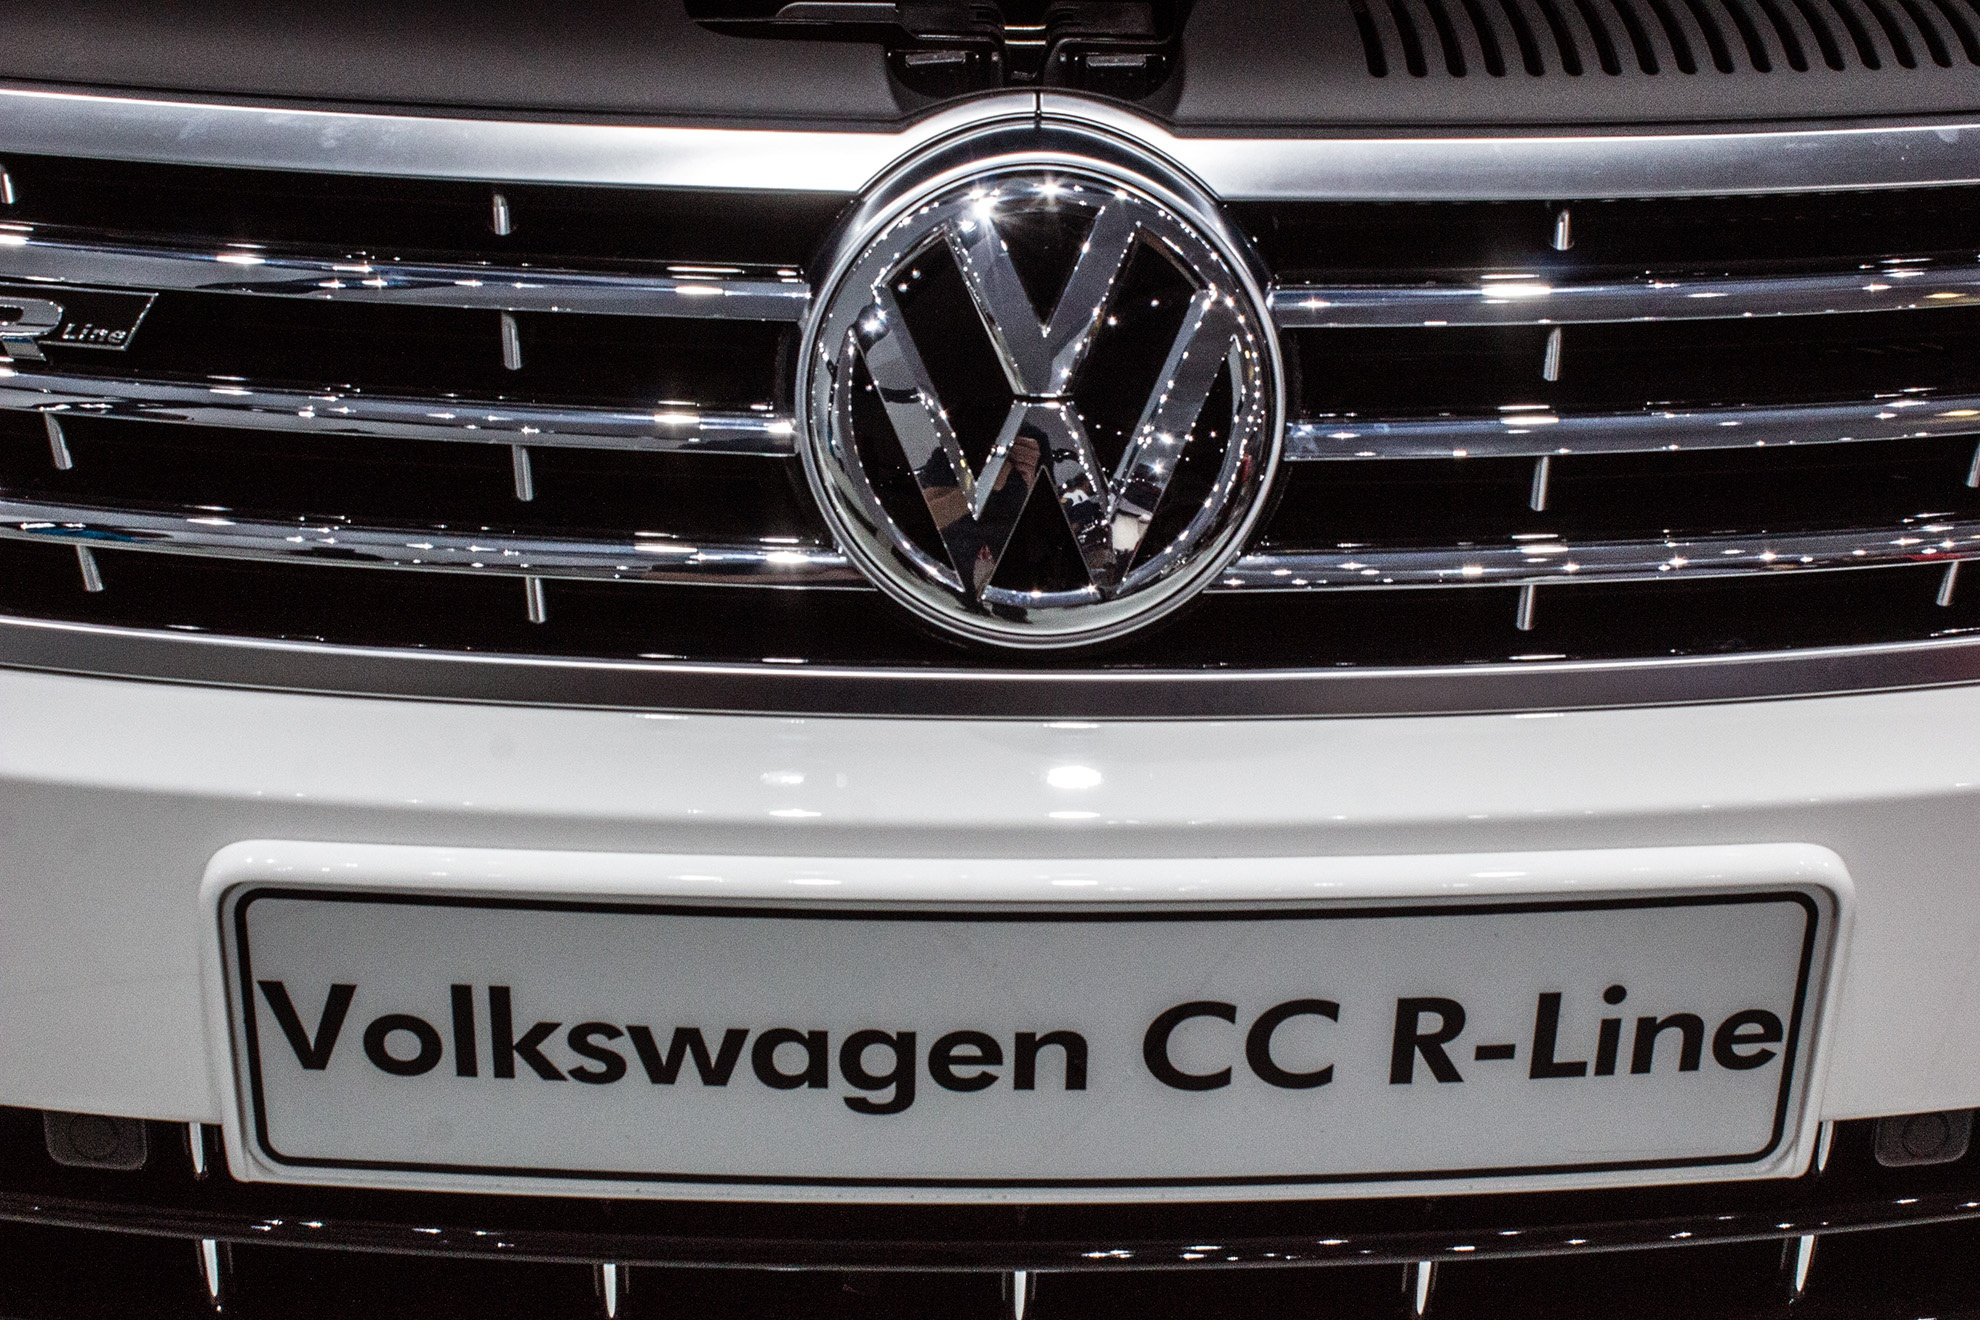 volkswagen-cc-rline-grill-and-logo